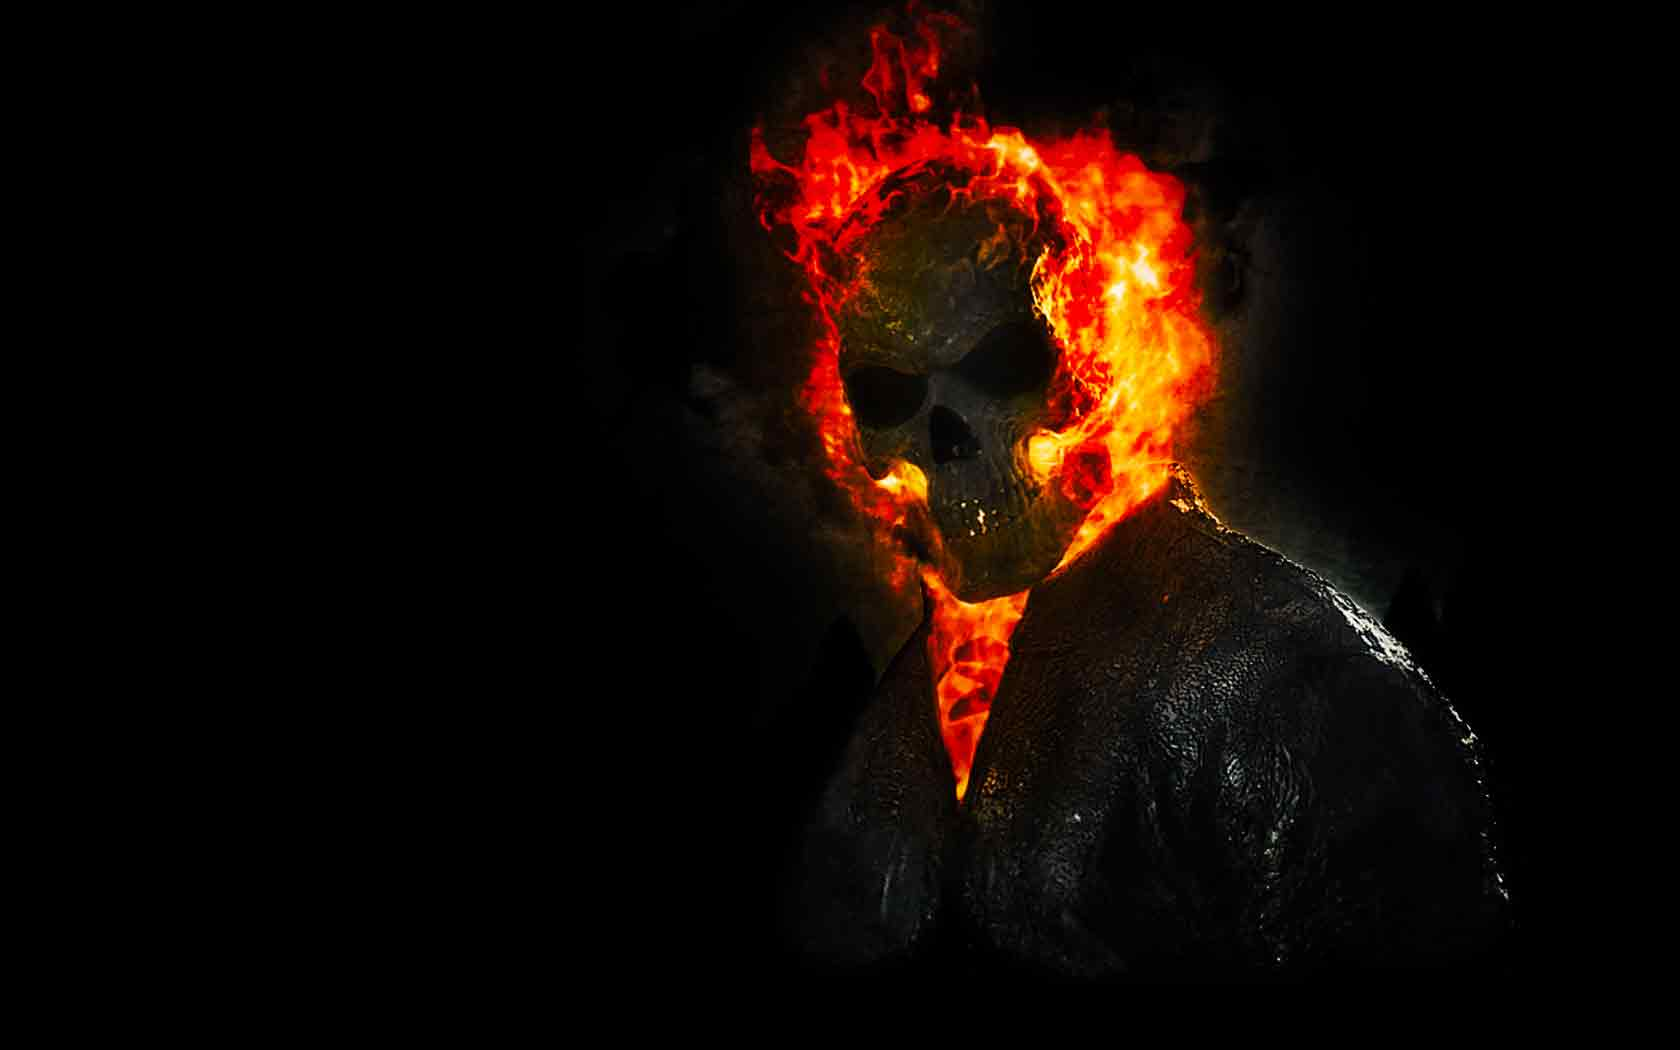 Ghost Rider Spirit of Vengeance wallpaper walls hdwalls4com 1680x1050